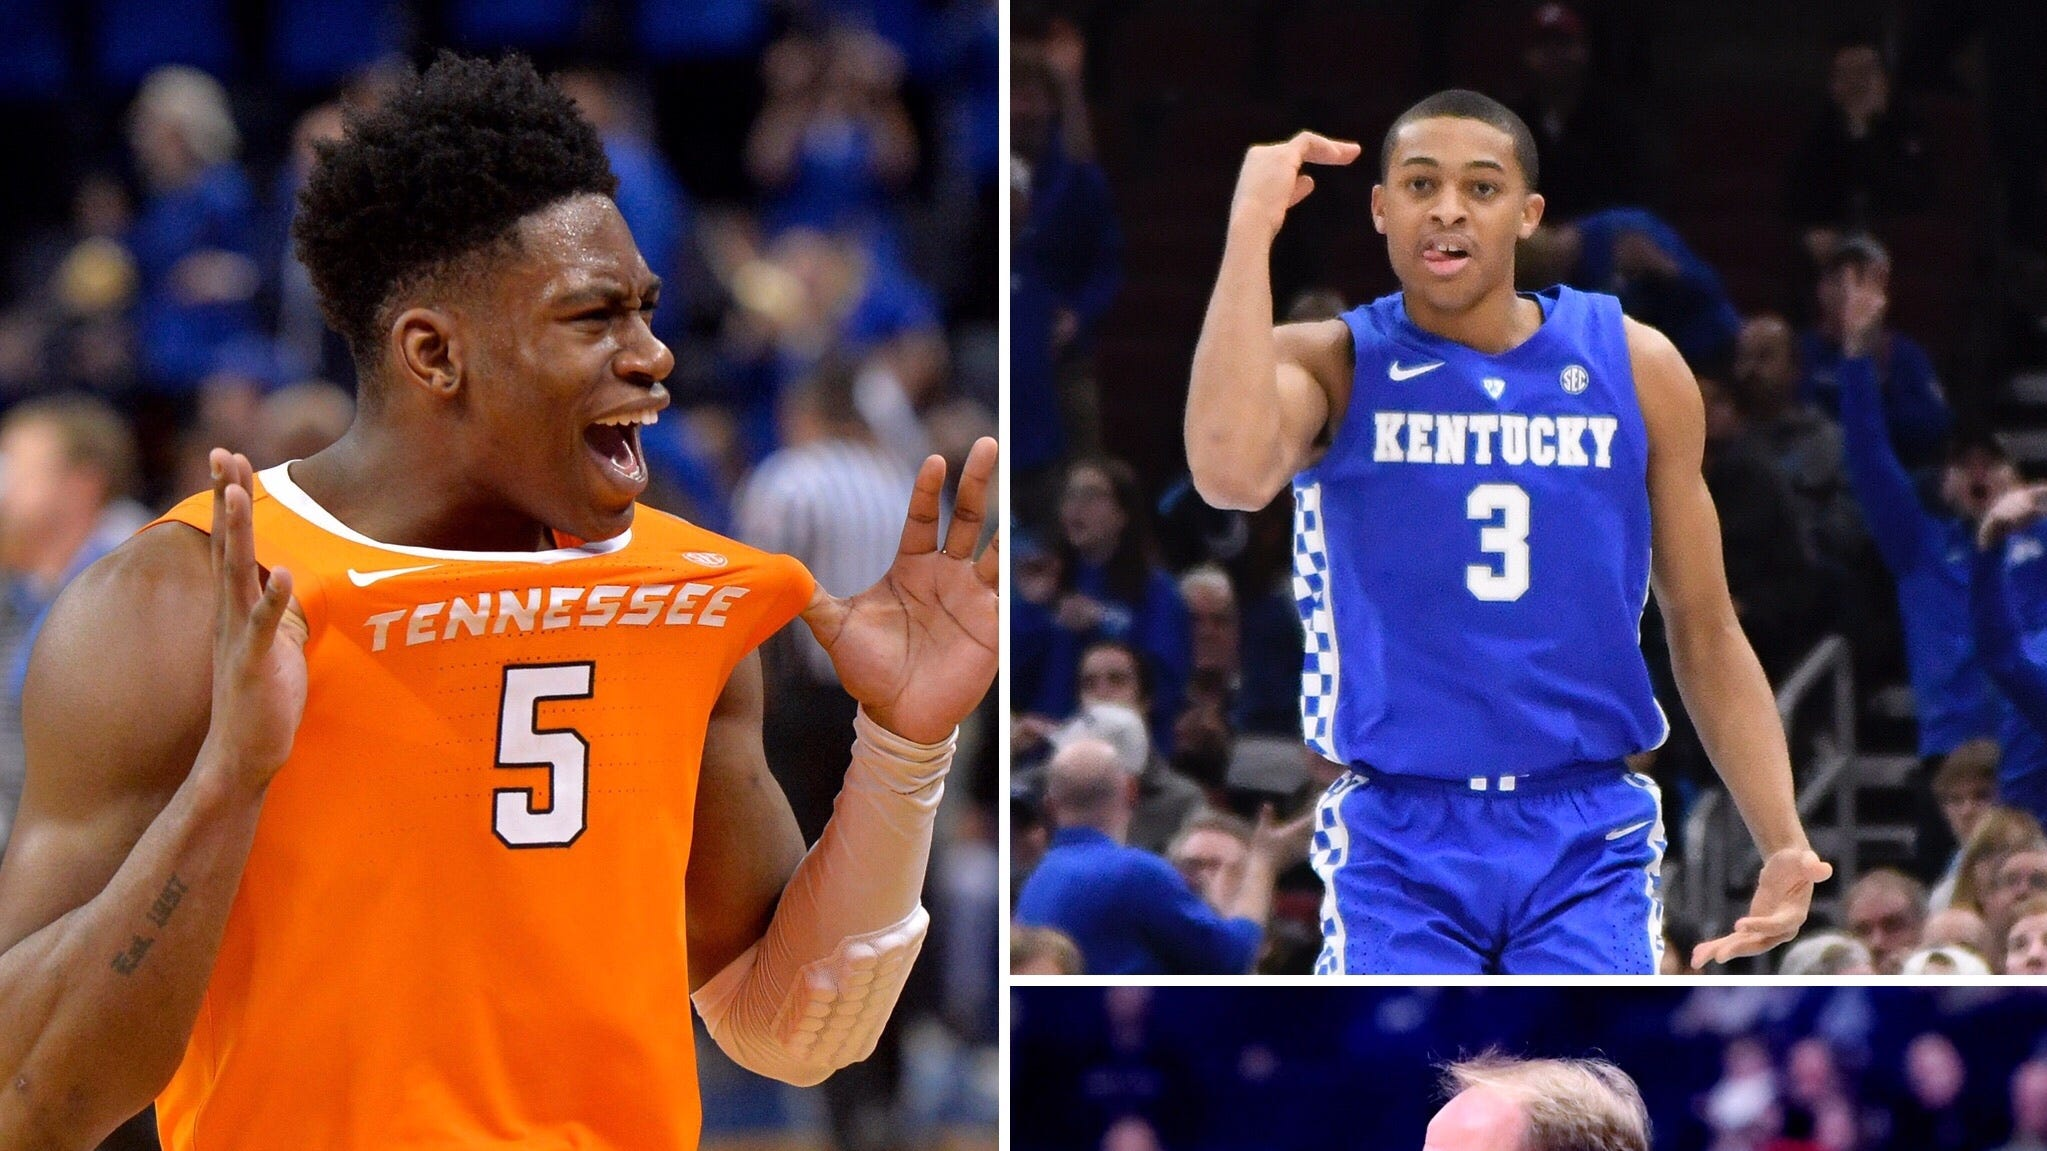 Tennessee's Admiral Schofield (counter-clockwise from top left), Vanderbilt's Simi Shittu, Ole Miss coach Kermit Davis and Kentucky's Keldon Johnson enter SEC play this week.